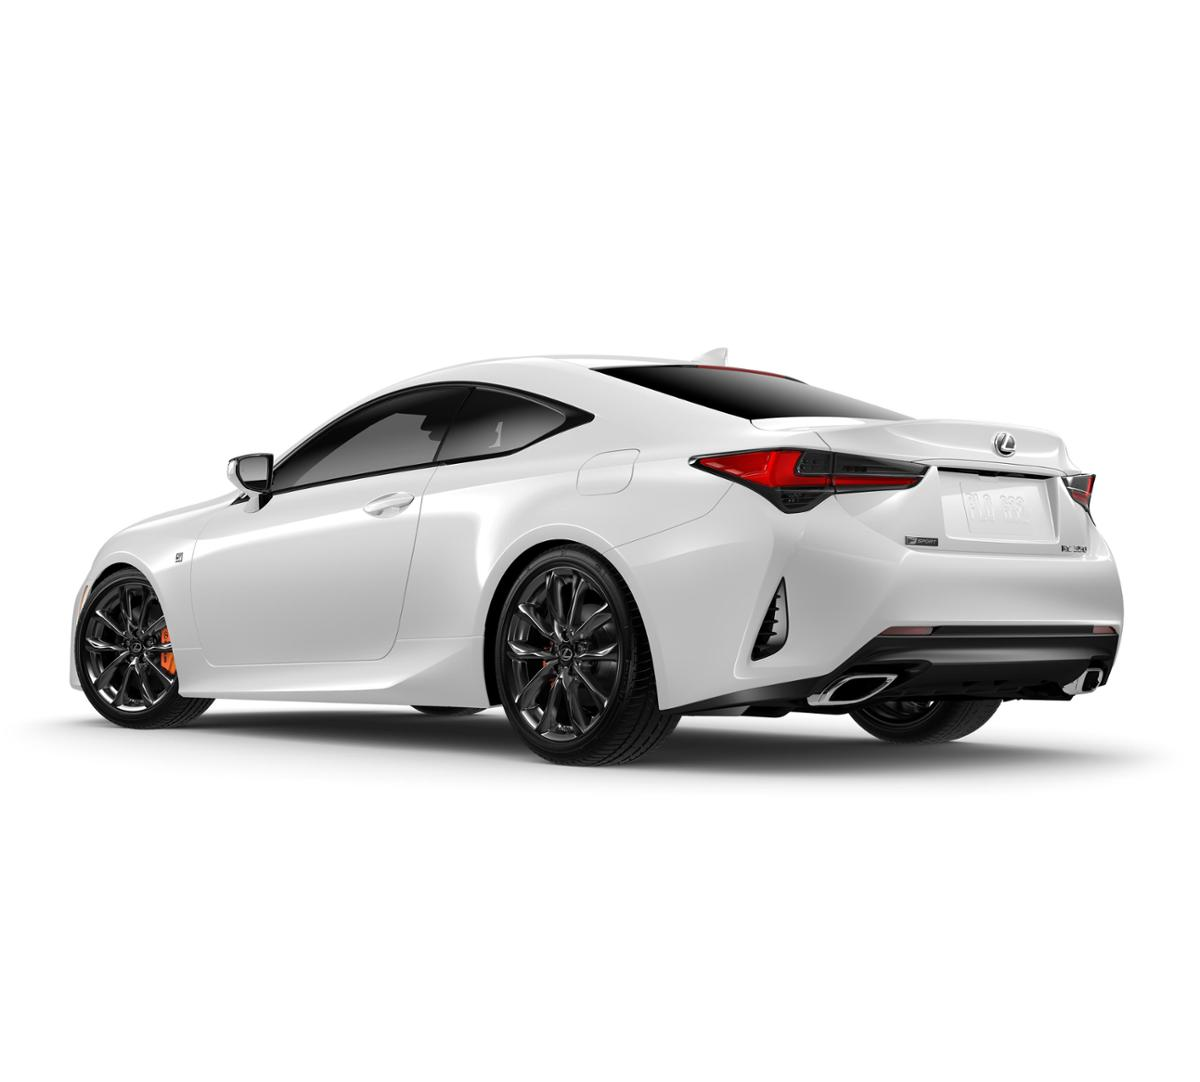 Lexus Rc 350 F Sport Price: New Ultra White 2019 Lexus RC 350 F SPORT In Clearwater